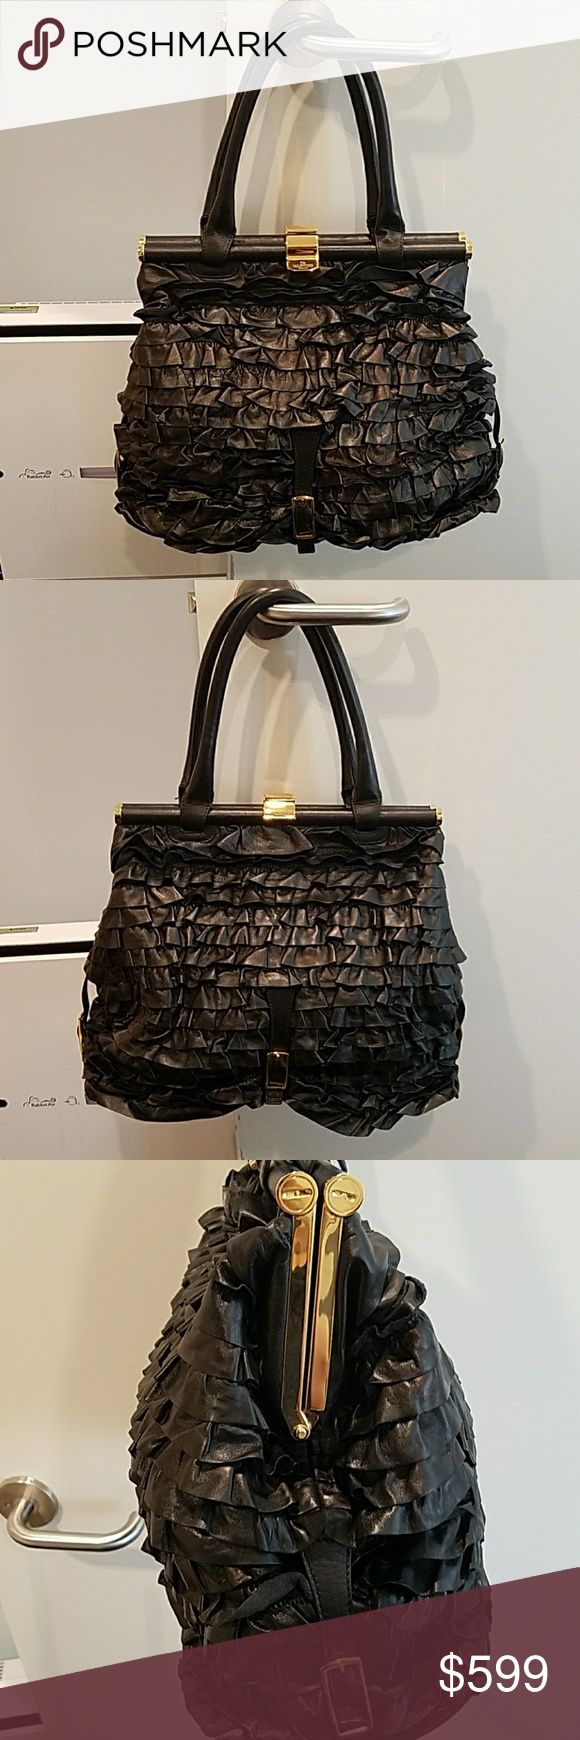 Valentino Garavani Black Leather Ruffled Tote Bag 100% Authentic Valentino Garavani Bag! Black Leather with a ruffled leather exterior and a black fabric interior. Gold colored metal hardware is pristine and free of scratches! Bottom studs still have plastic covering. This bag has only been worn a few times, so is in very good condition. Minor, unnoticeable scuff marks along the opening and one very small makeup stain on the interior lining of the bag. Valentino Garavani Bags Totes